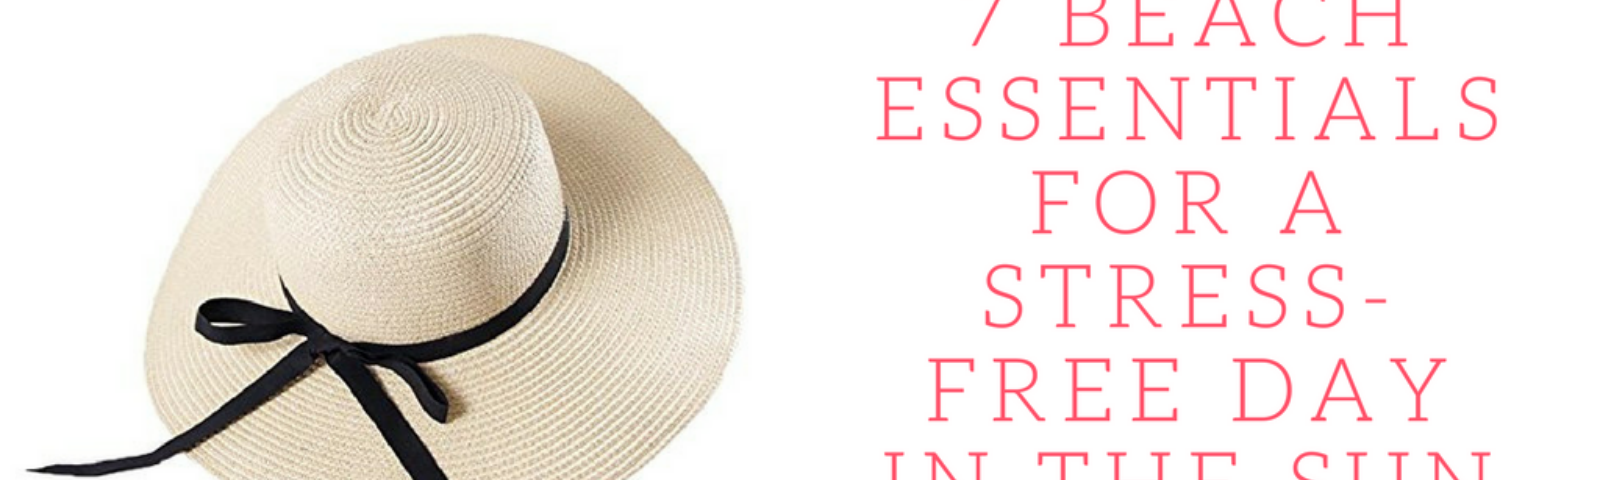 These 7 beach essentials will help you have a day of stress-free fun in the sun.